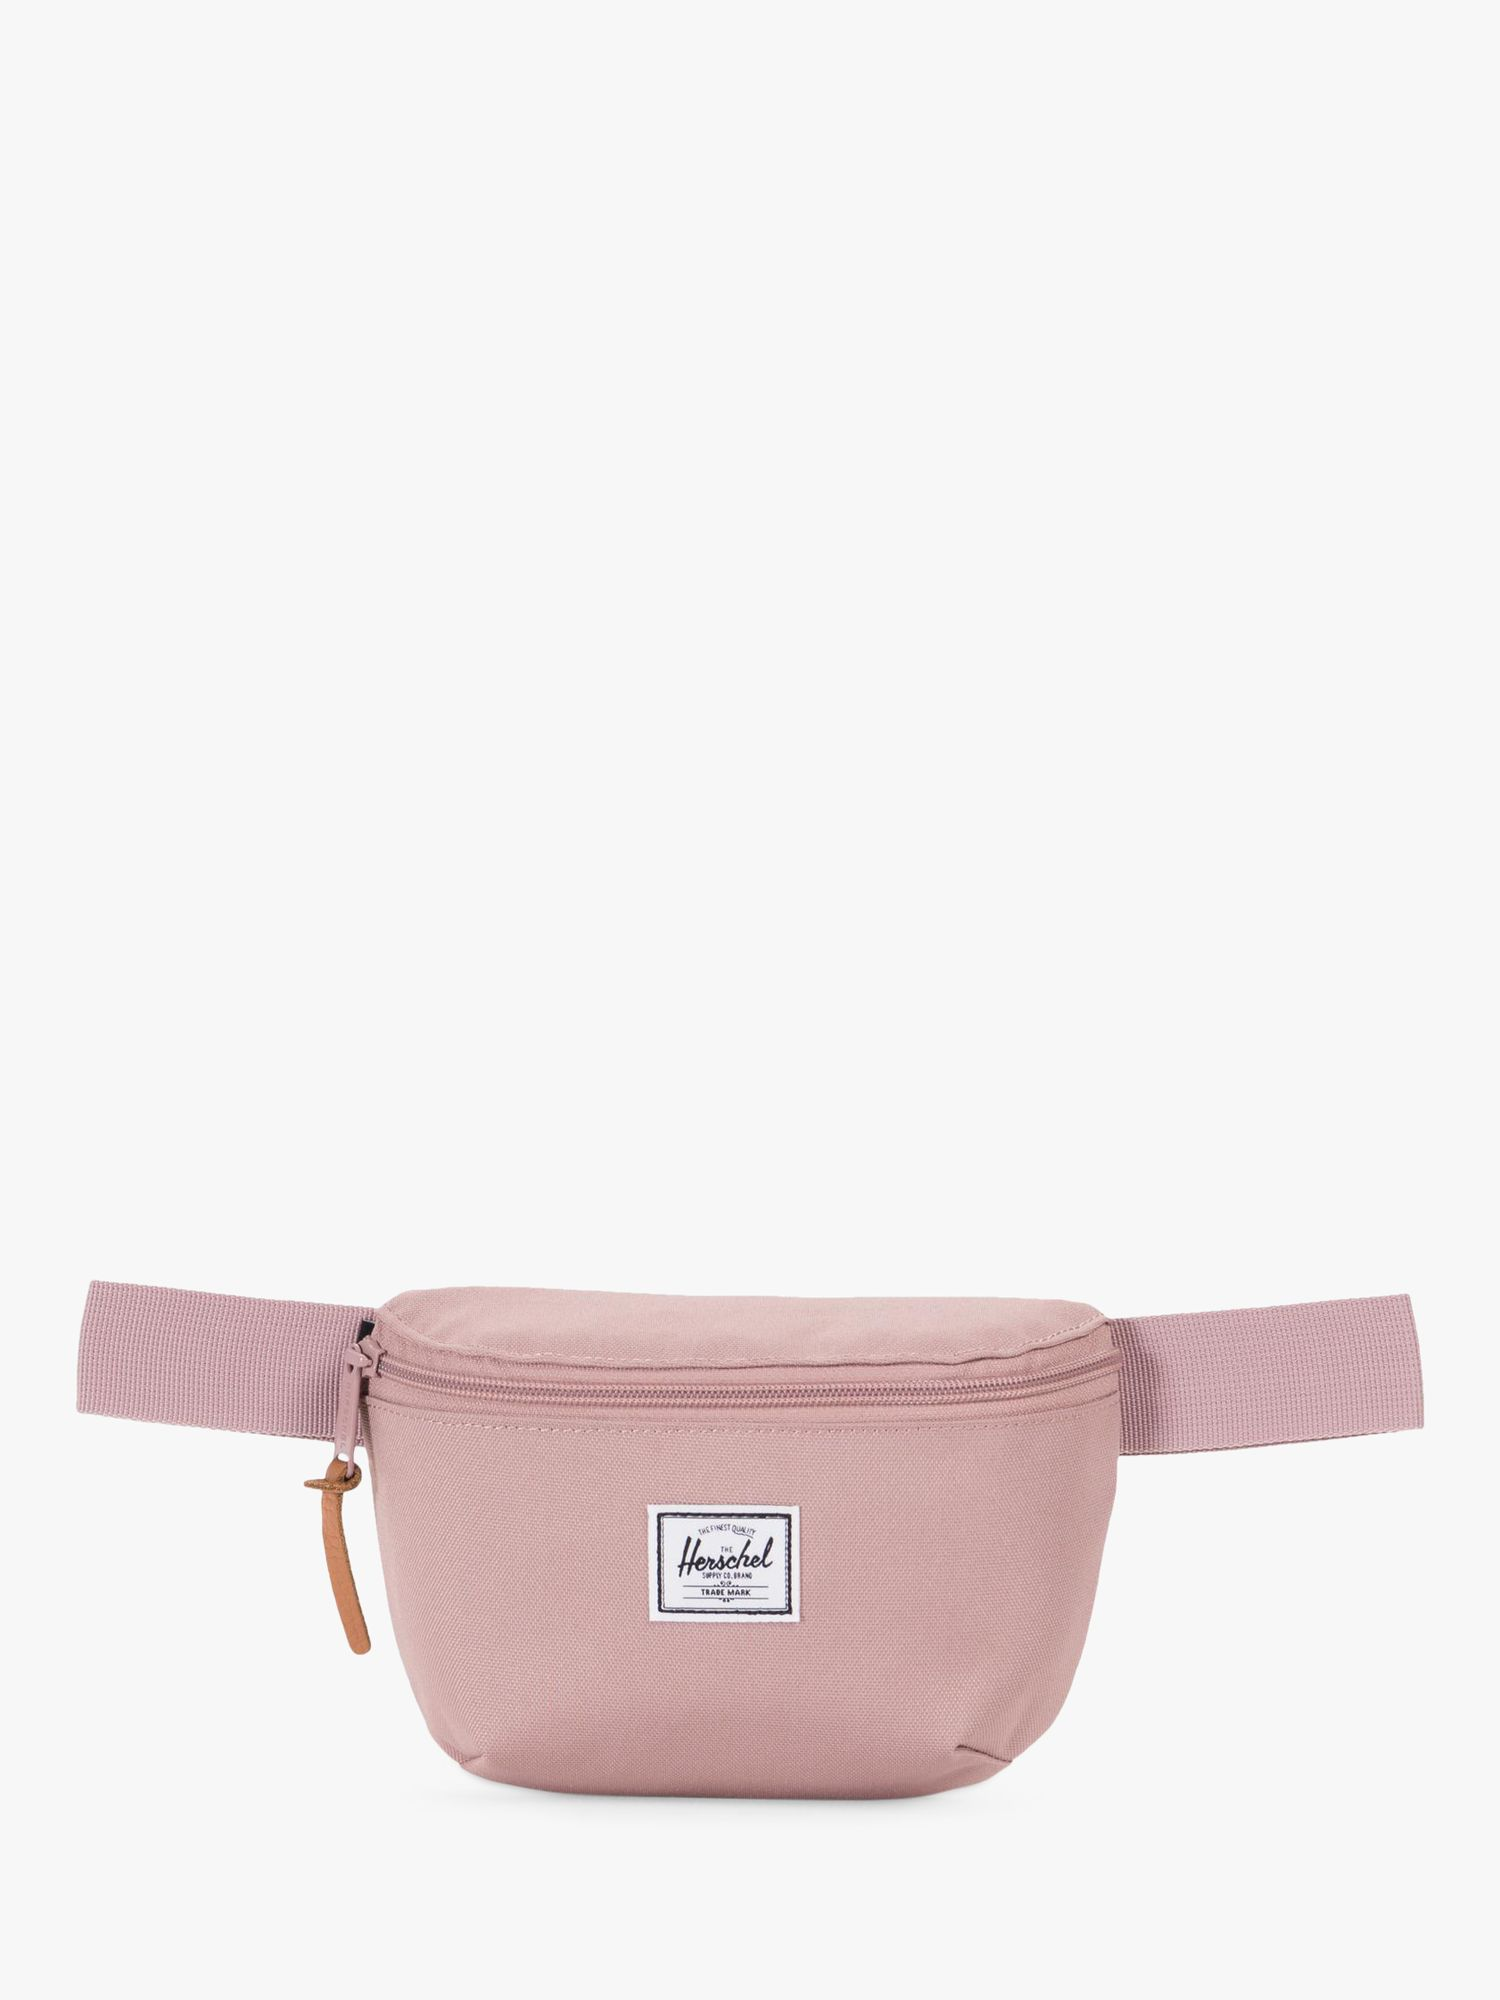 Herschel Supply Co. Herschel Supply Co. Fourteen Bum Bag, Ash Rose